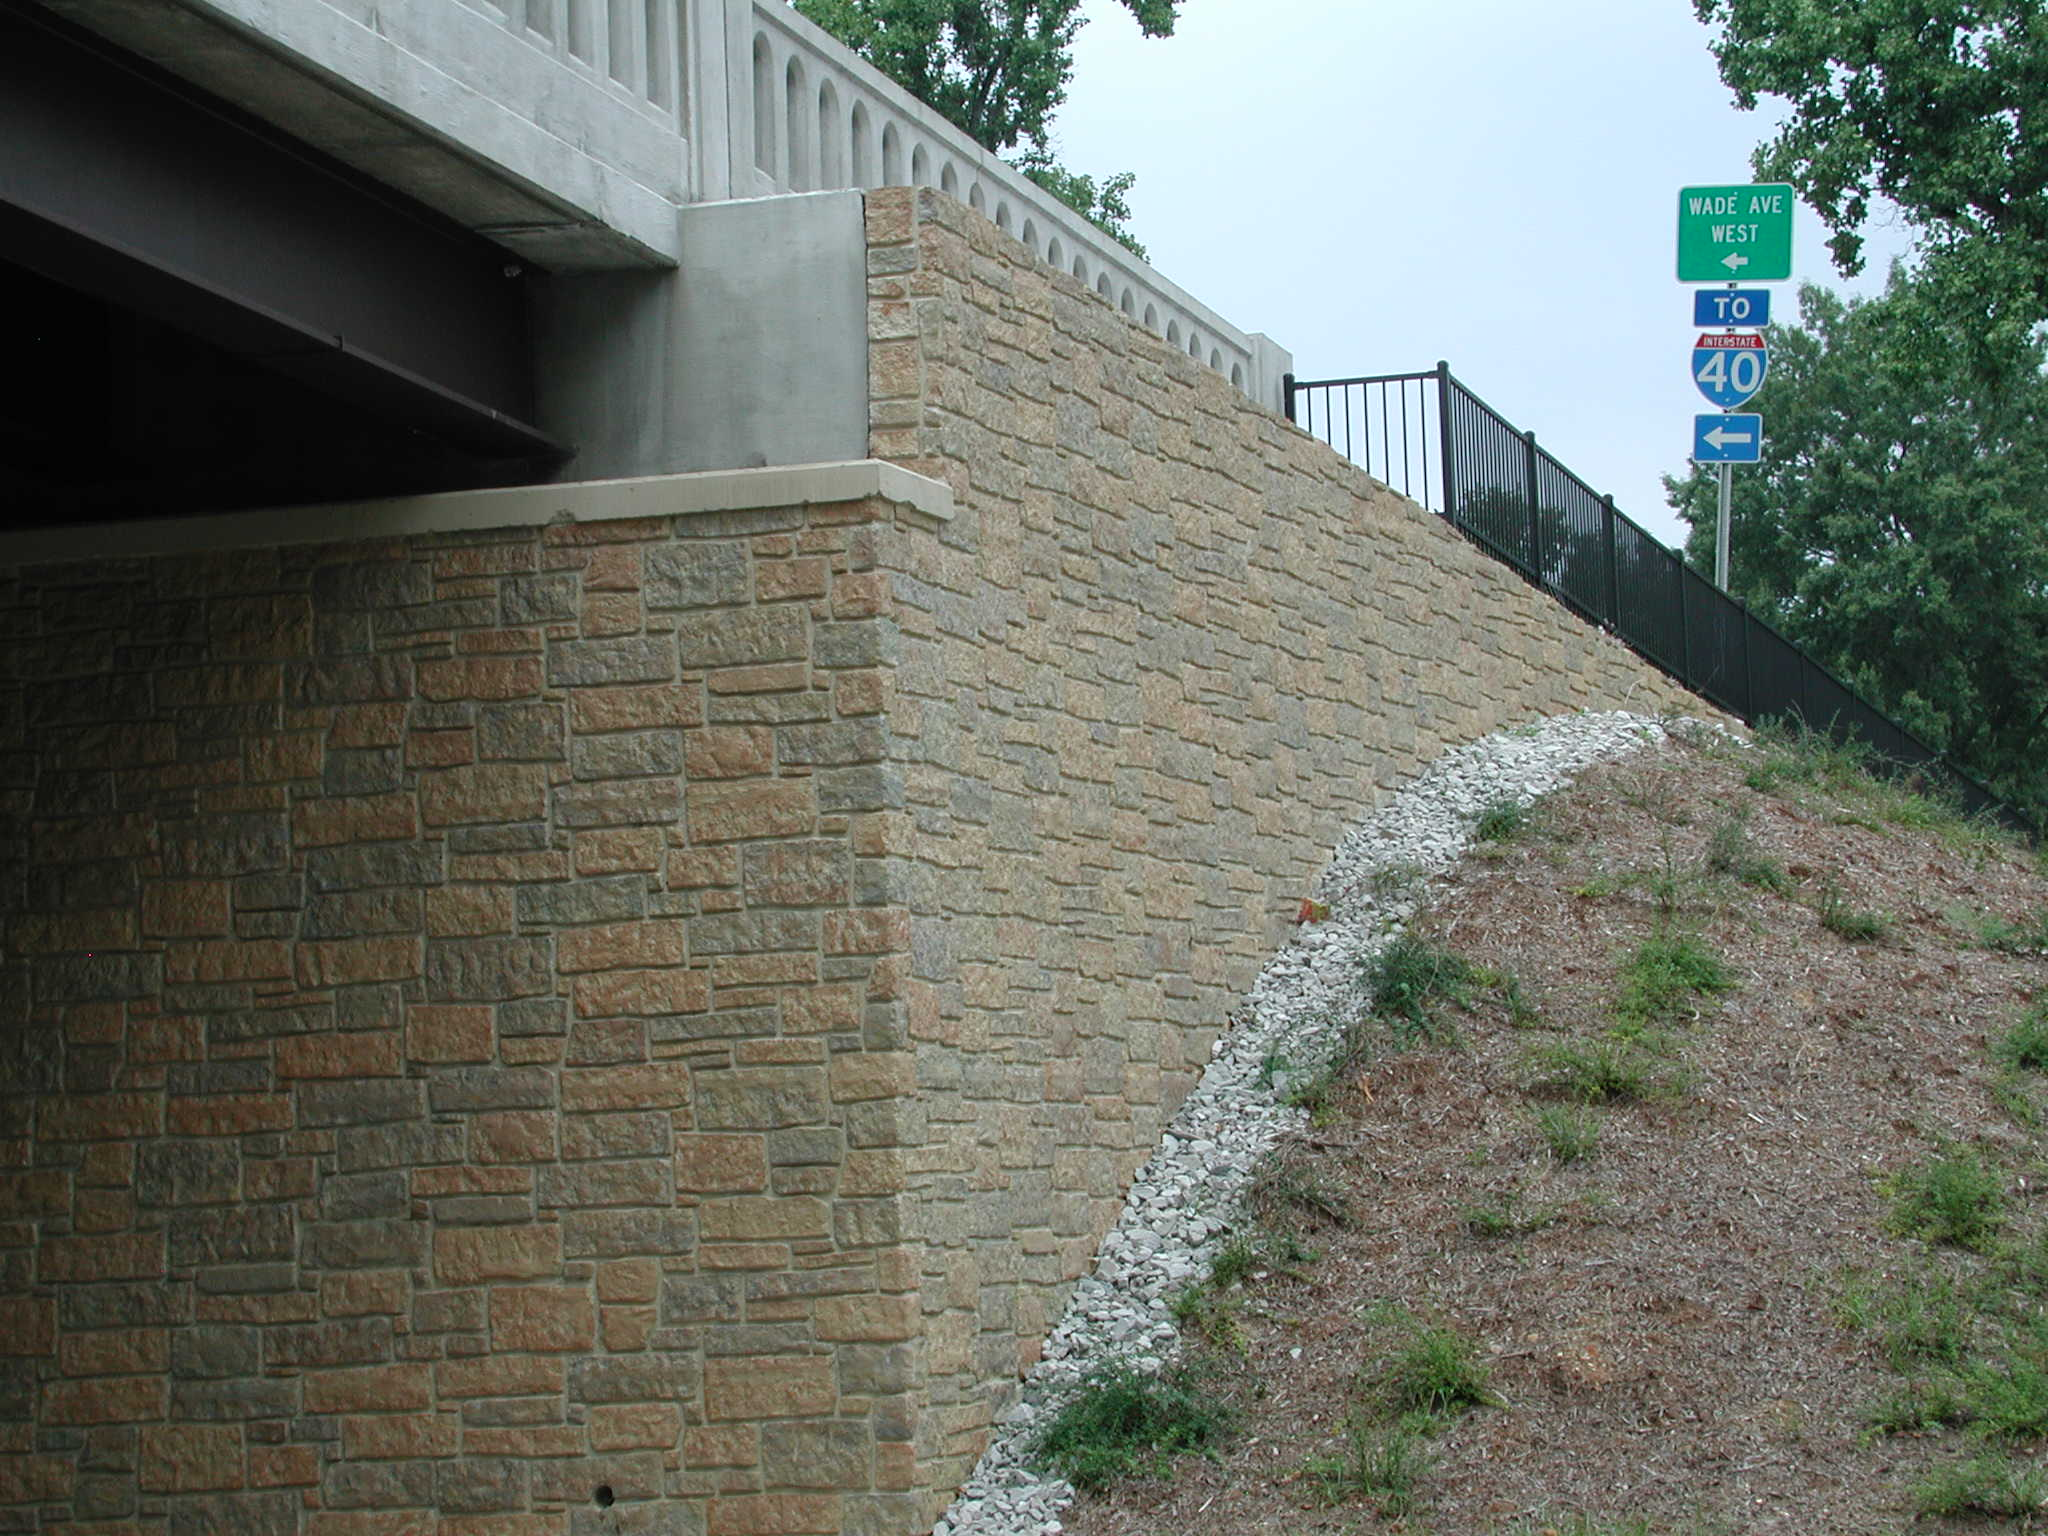 12005-bearpath-coursed-stone-formliner-hq-40